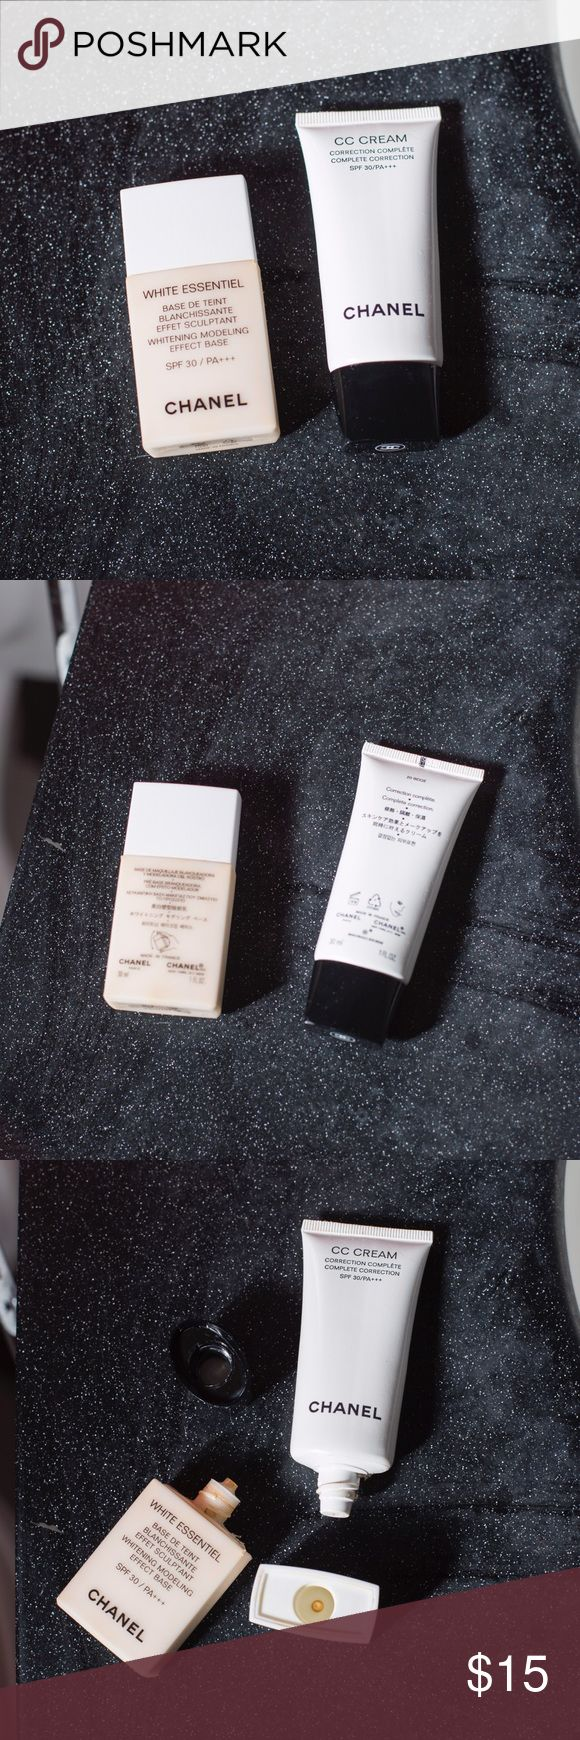 Chanel White Essential Base and CC Cream - Chanel White Essential Base SPF 30 PA+++ ( have 2/3 remained) - Chanel CC Cream ( only used twice)  $15 for all CHANEL Makeup Foundation